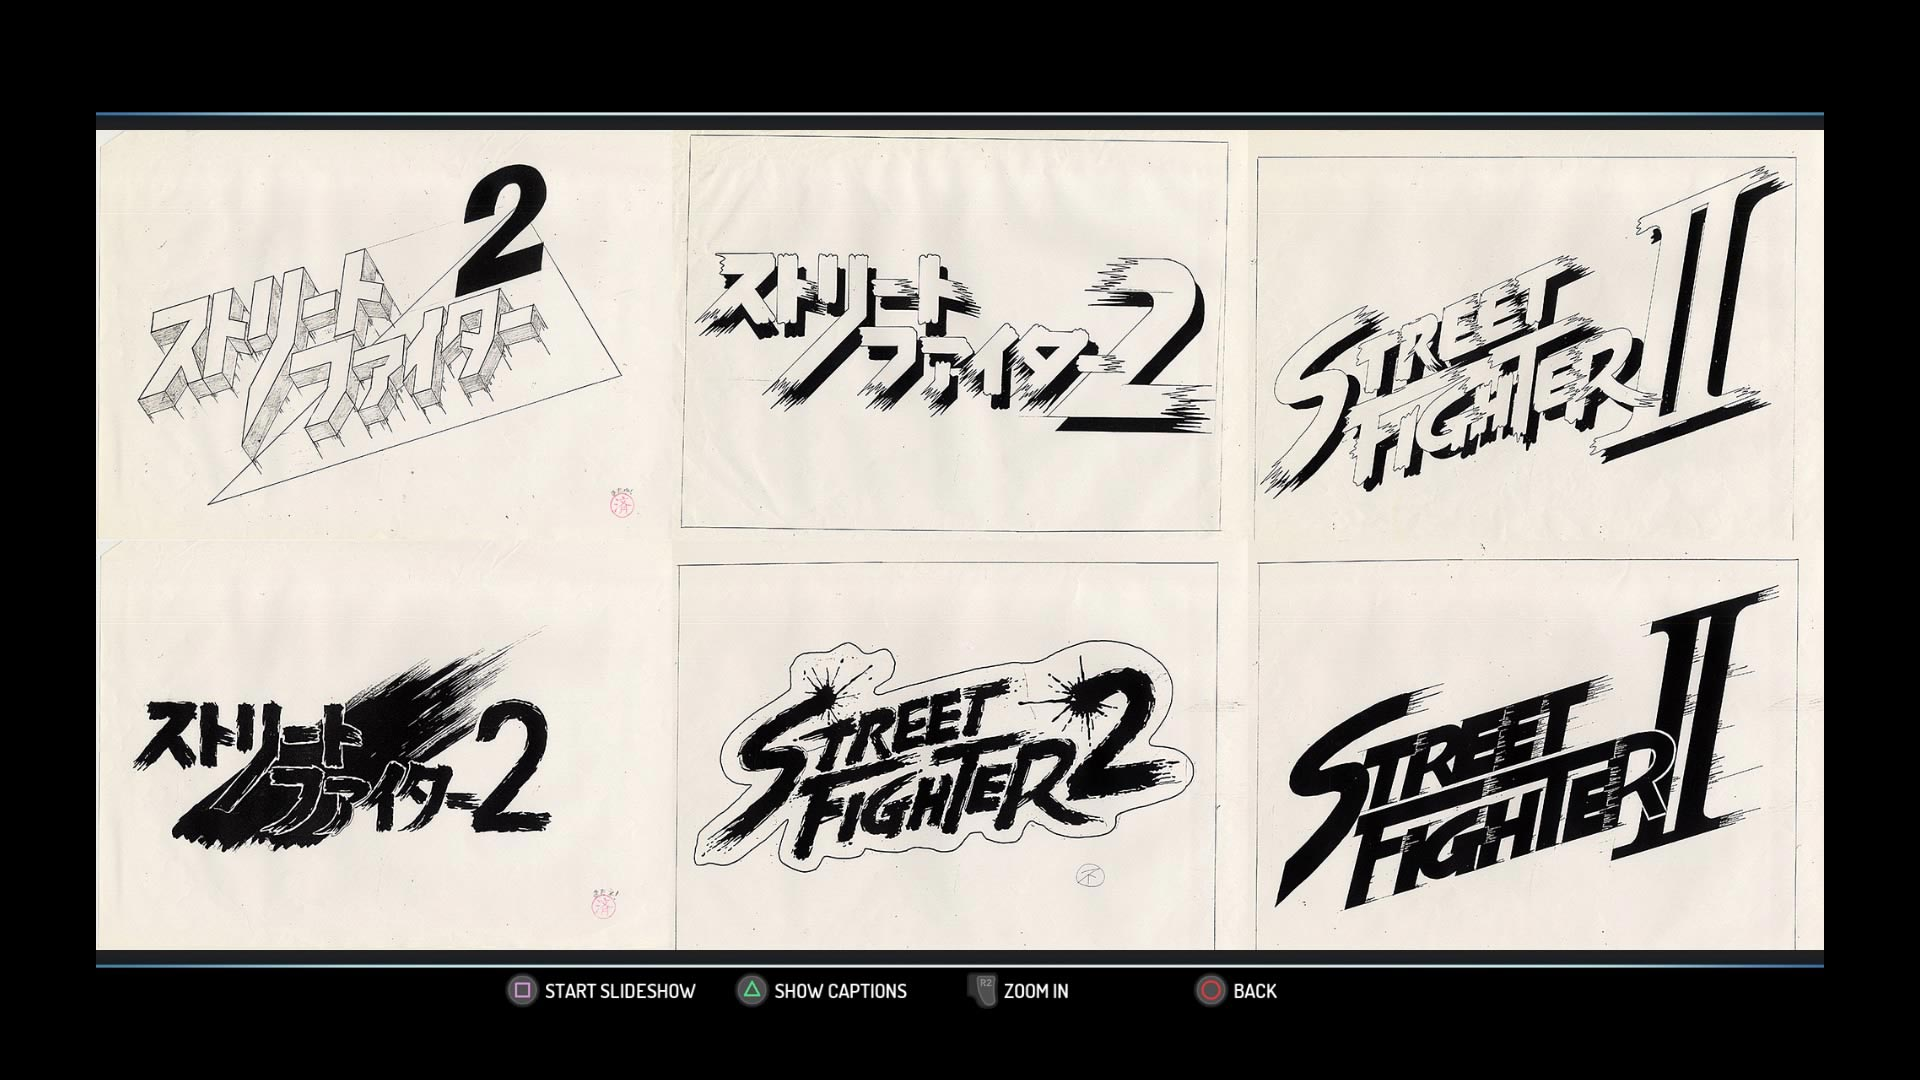 Street Fighter 30th Anniversary Collection review 3 out of 3 image gallery